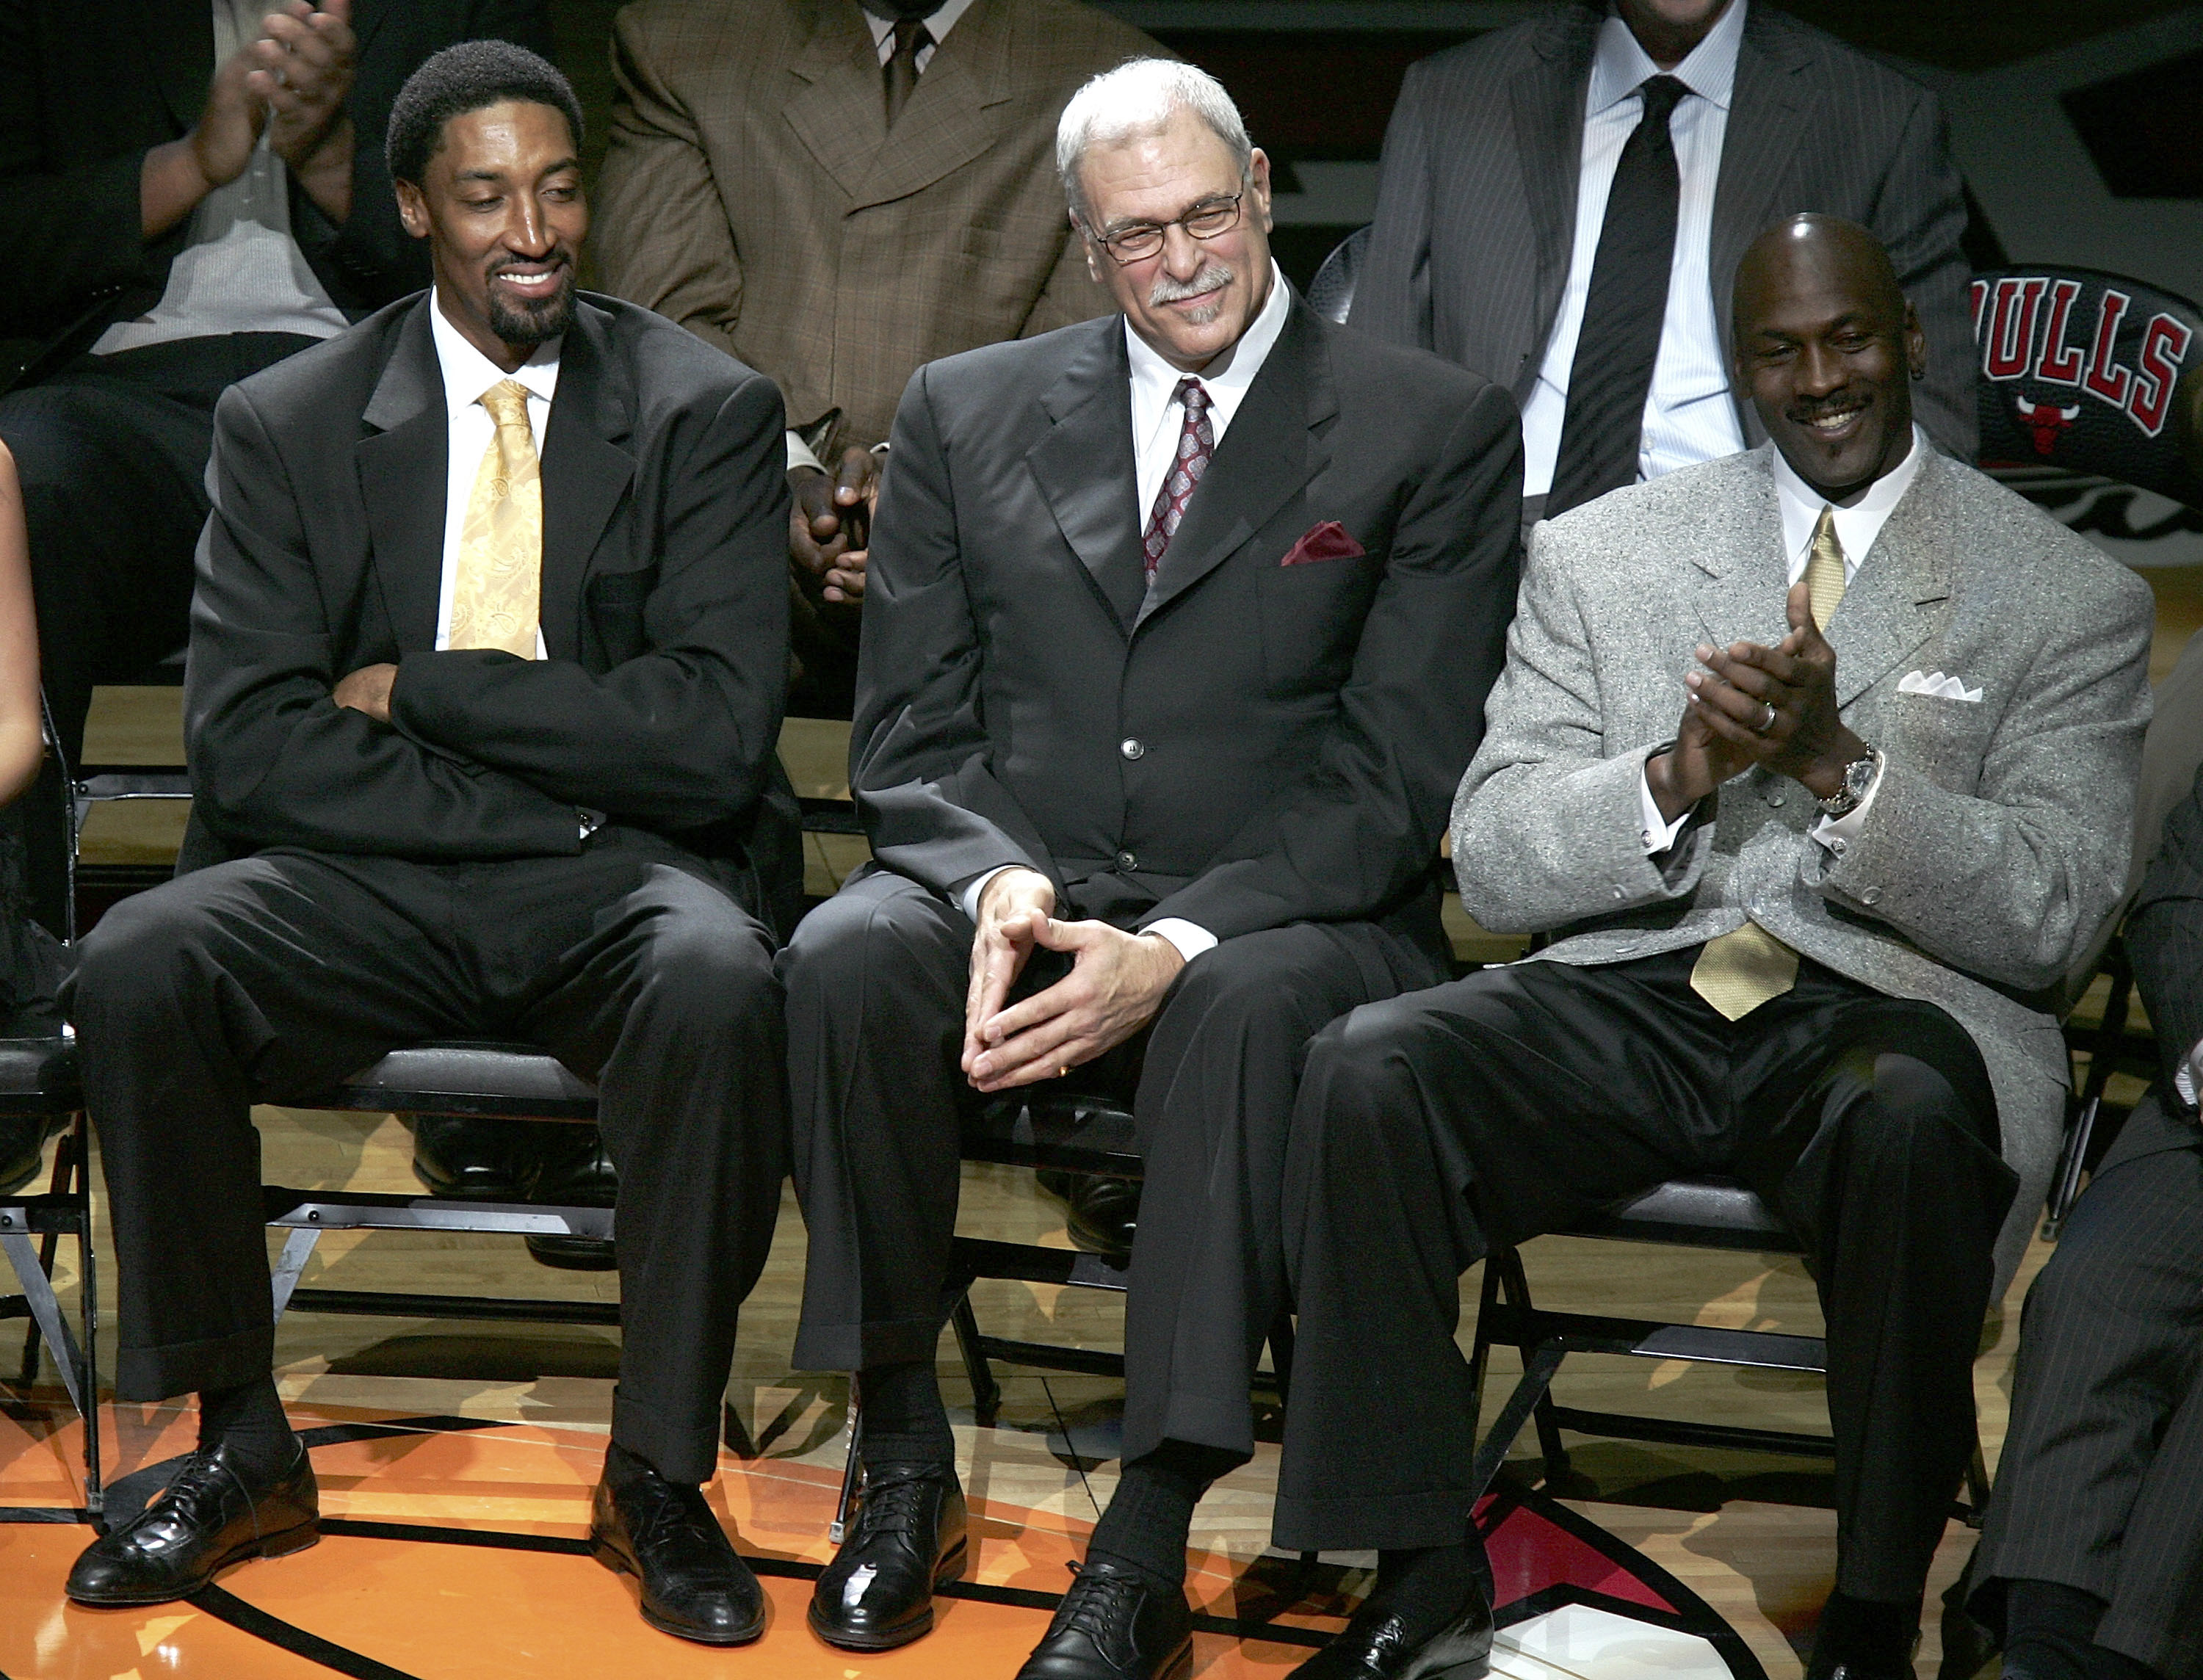 CHICAGO - DECEMBER 9:  (L-R) Scottie Pippen, Phil Jackson and Michael Jordan, formerly of the Chicago Bulls, look on during a ceremony retiring Pippen's #33 at halftime of a game between the Bulls and the Los Angeles Lakers on December 9, 2005 at the Unit